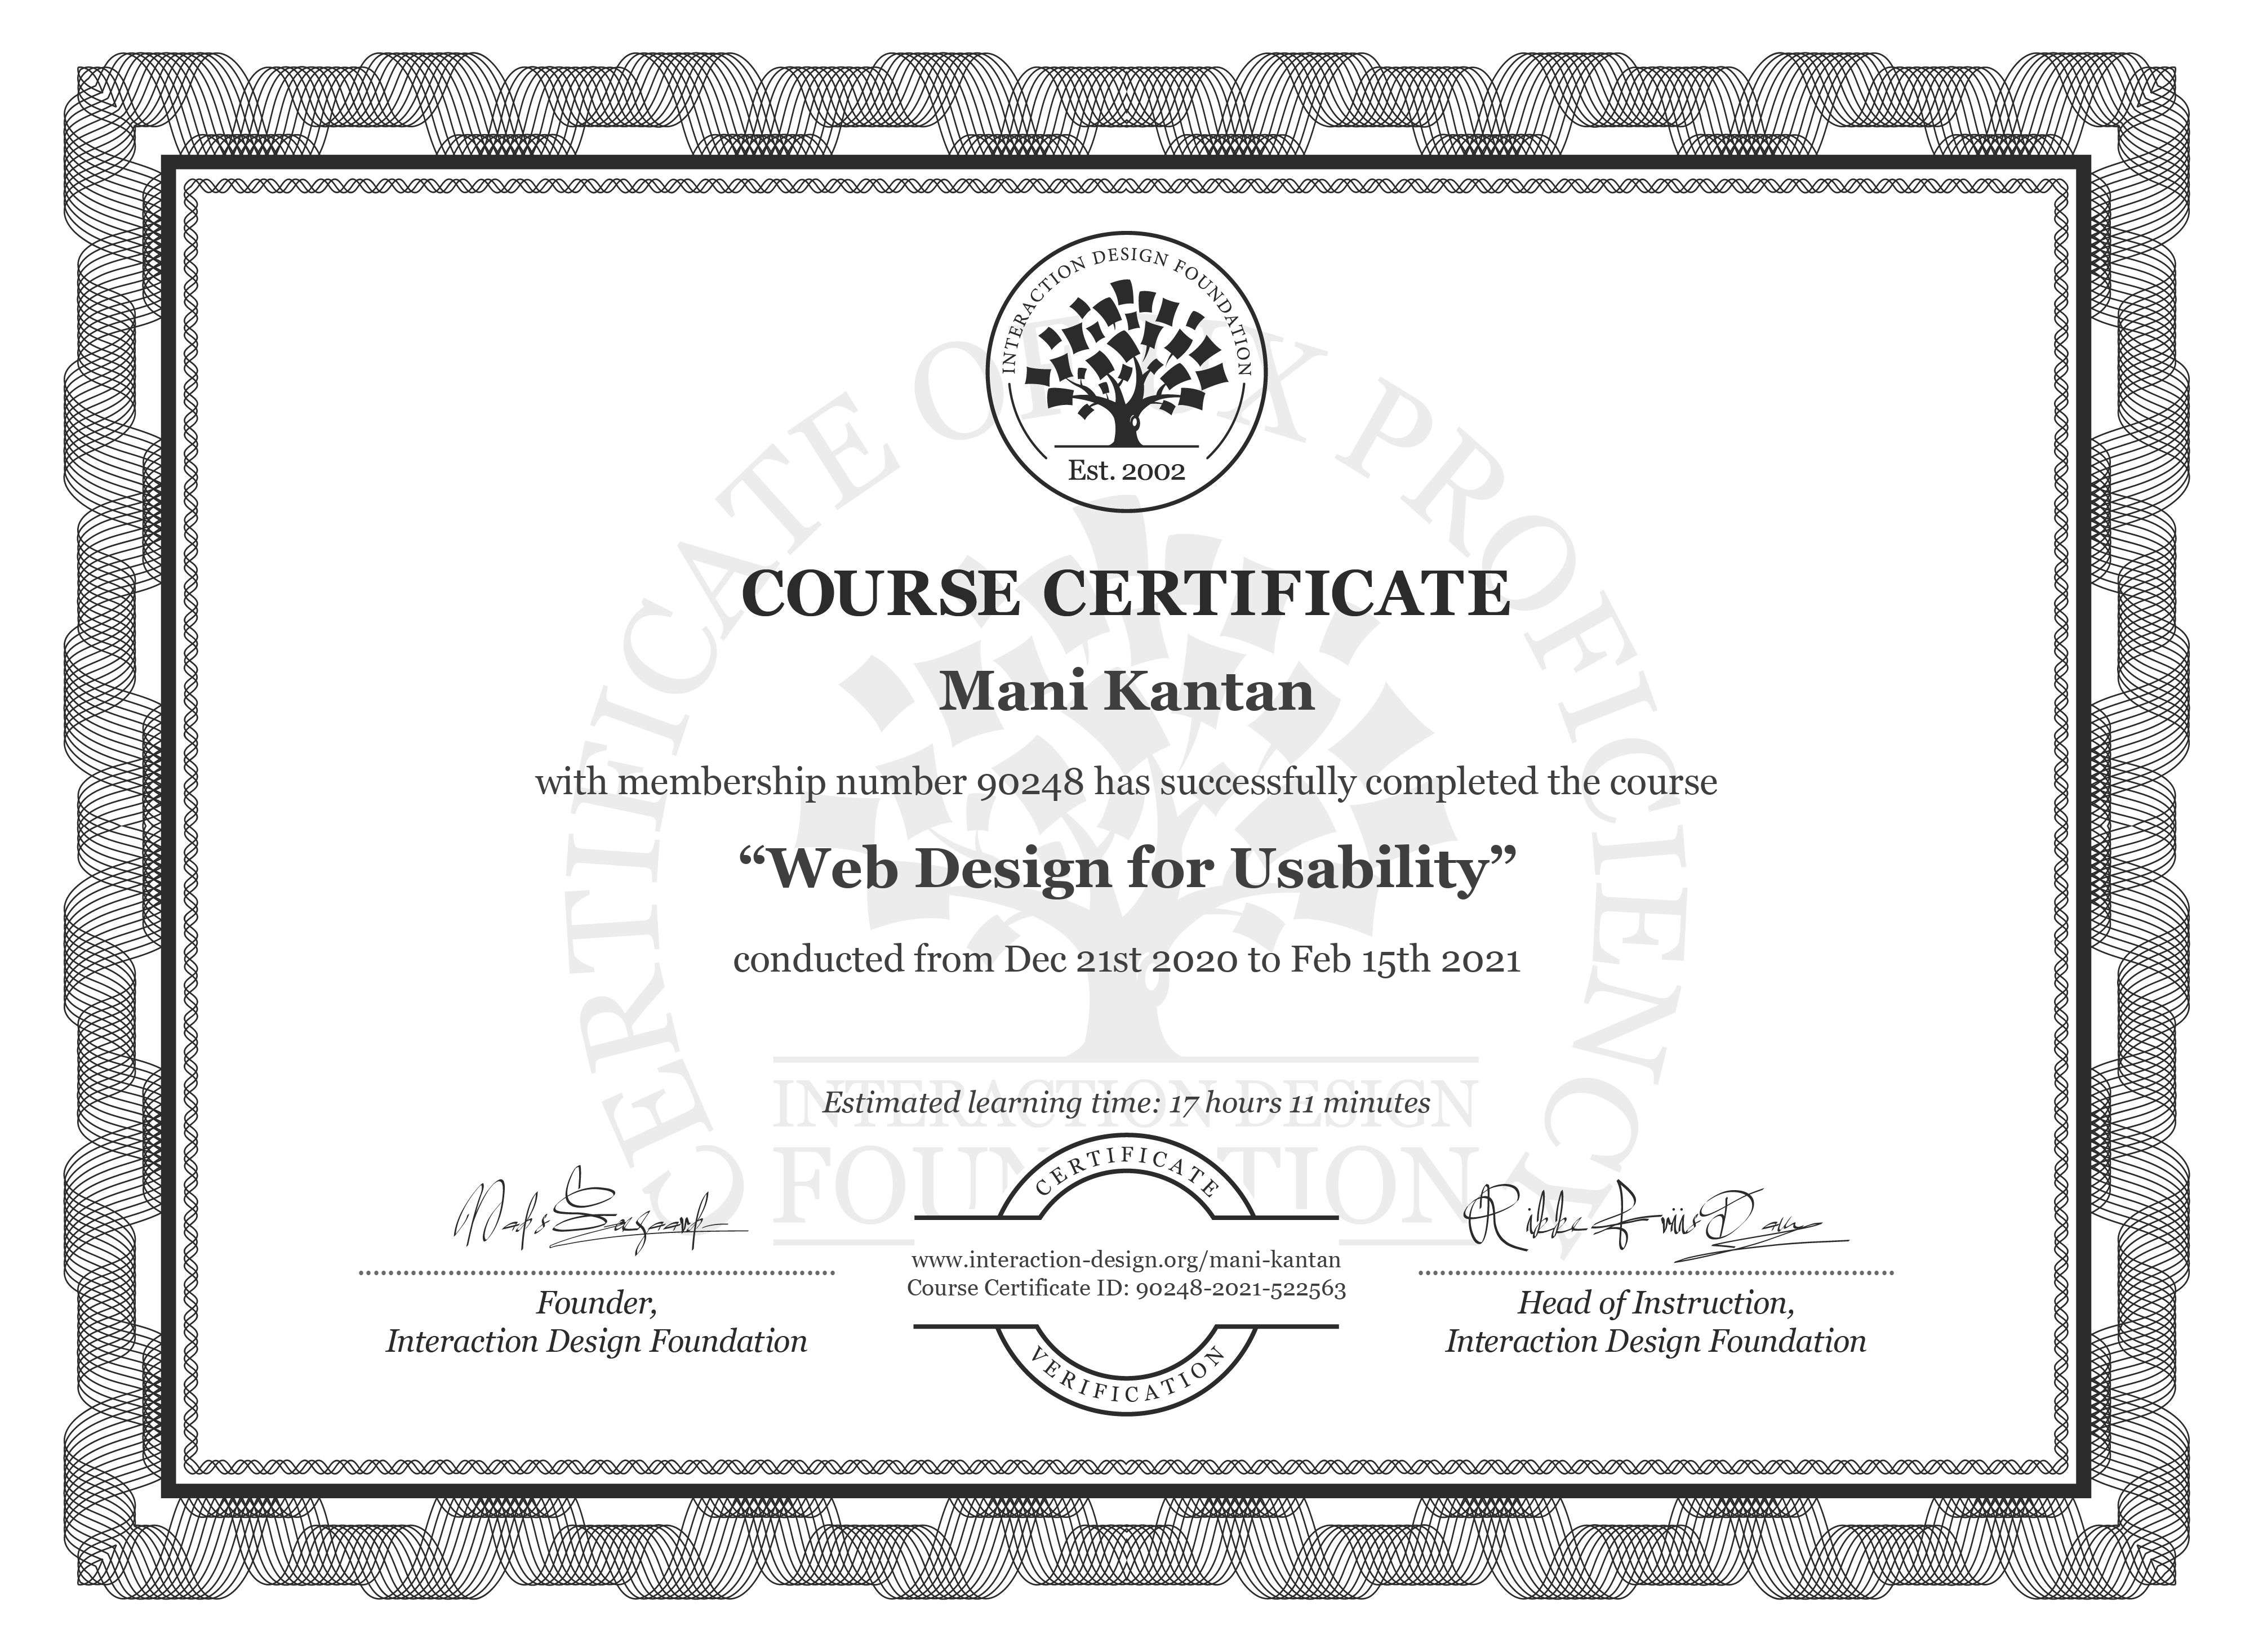 Mani Kantan's Course Certificate: Web Design for Usability